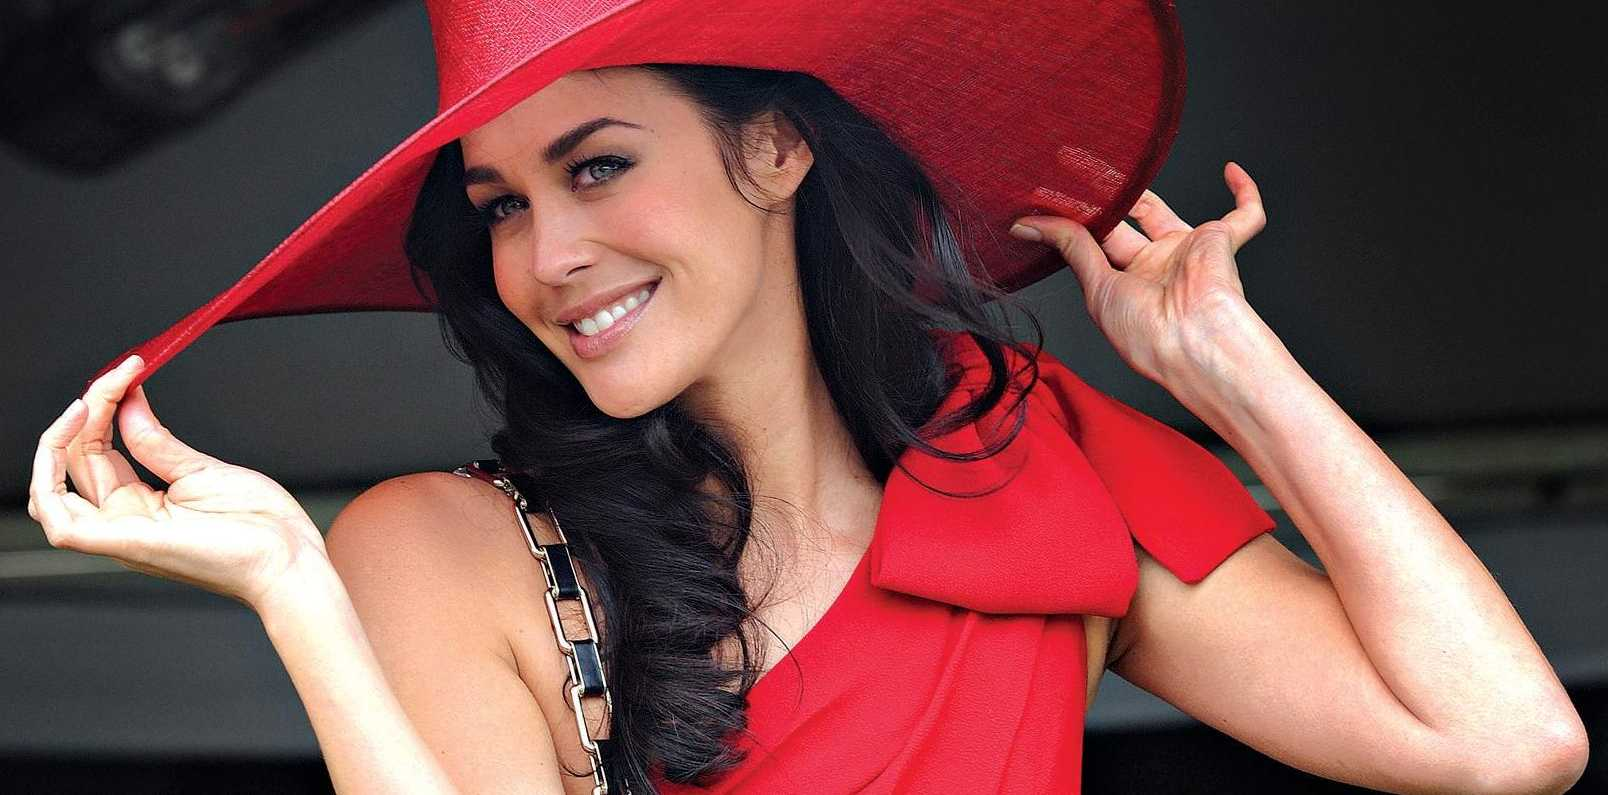 Model Megan Gale wears a red dress and matching hat at the Caulfield Cup race day, at Caulfield race track, in Melbourne, in 2009.